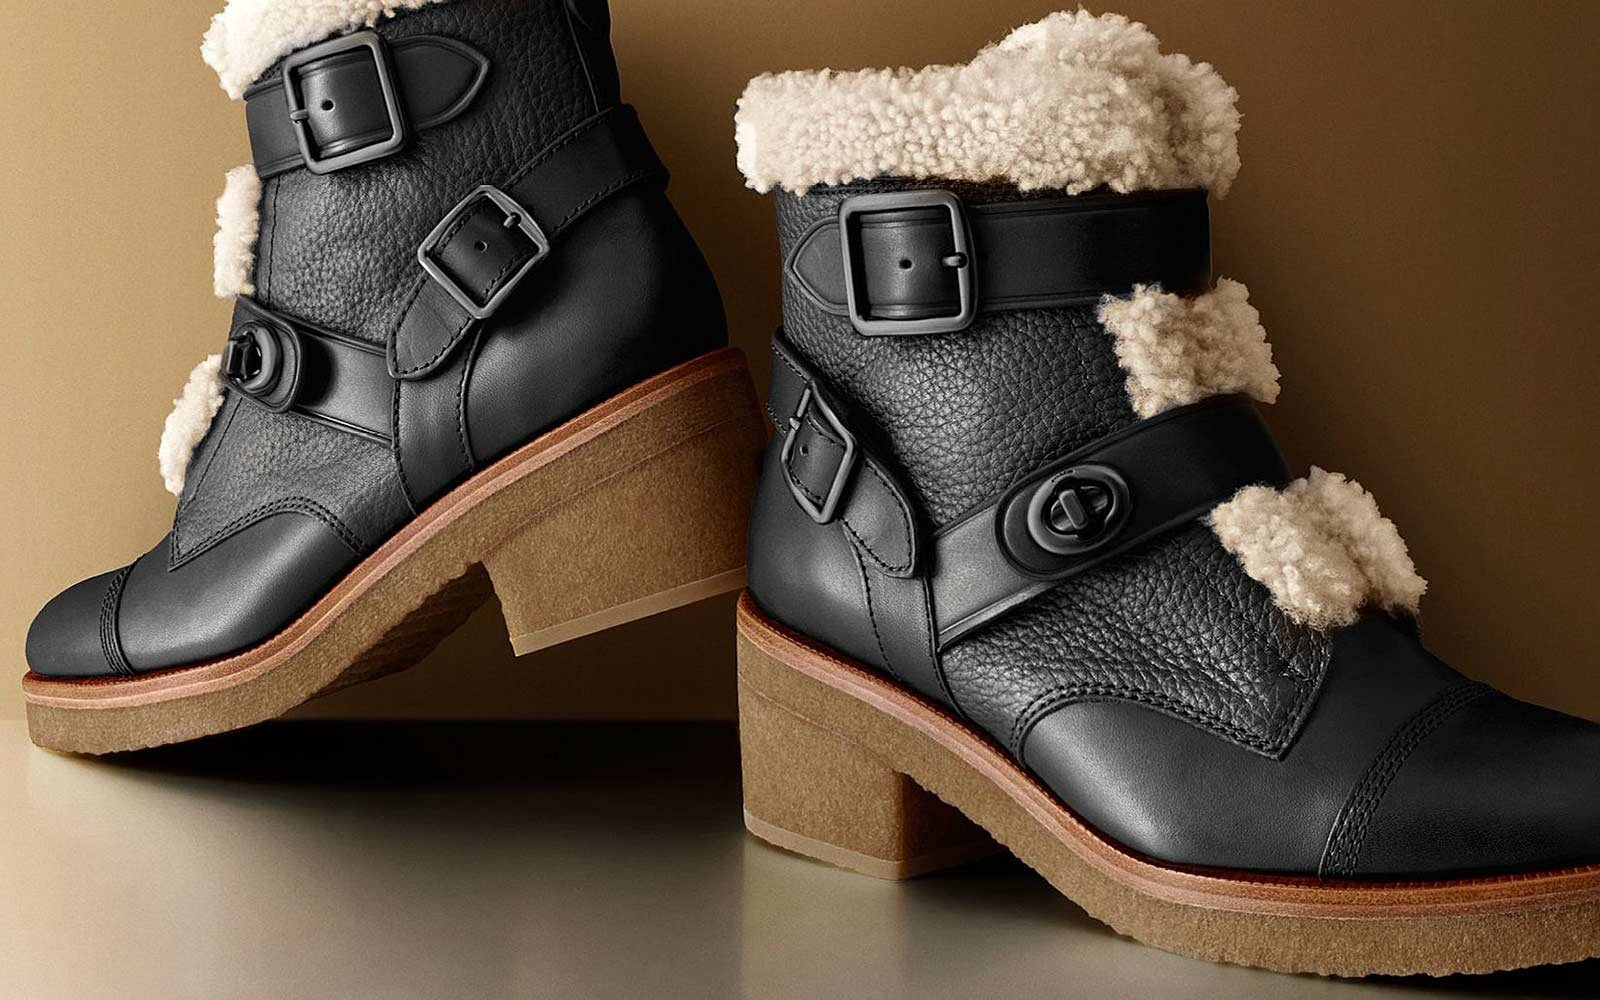 15 functional and stylish snow boots to get you through